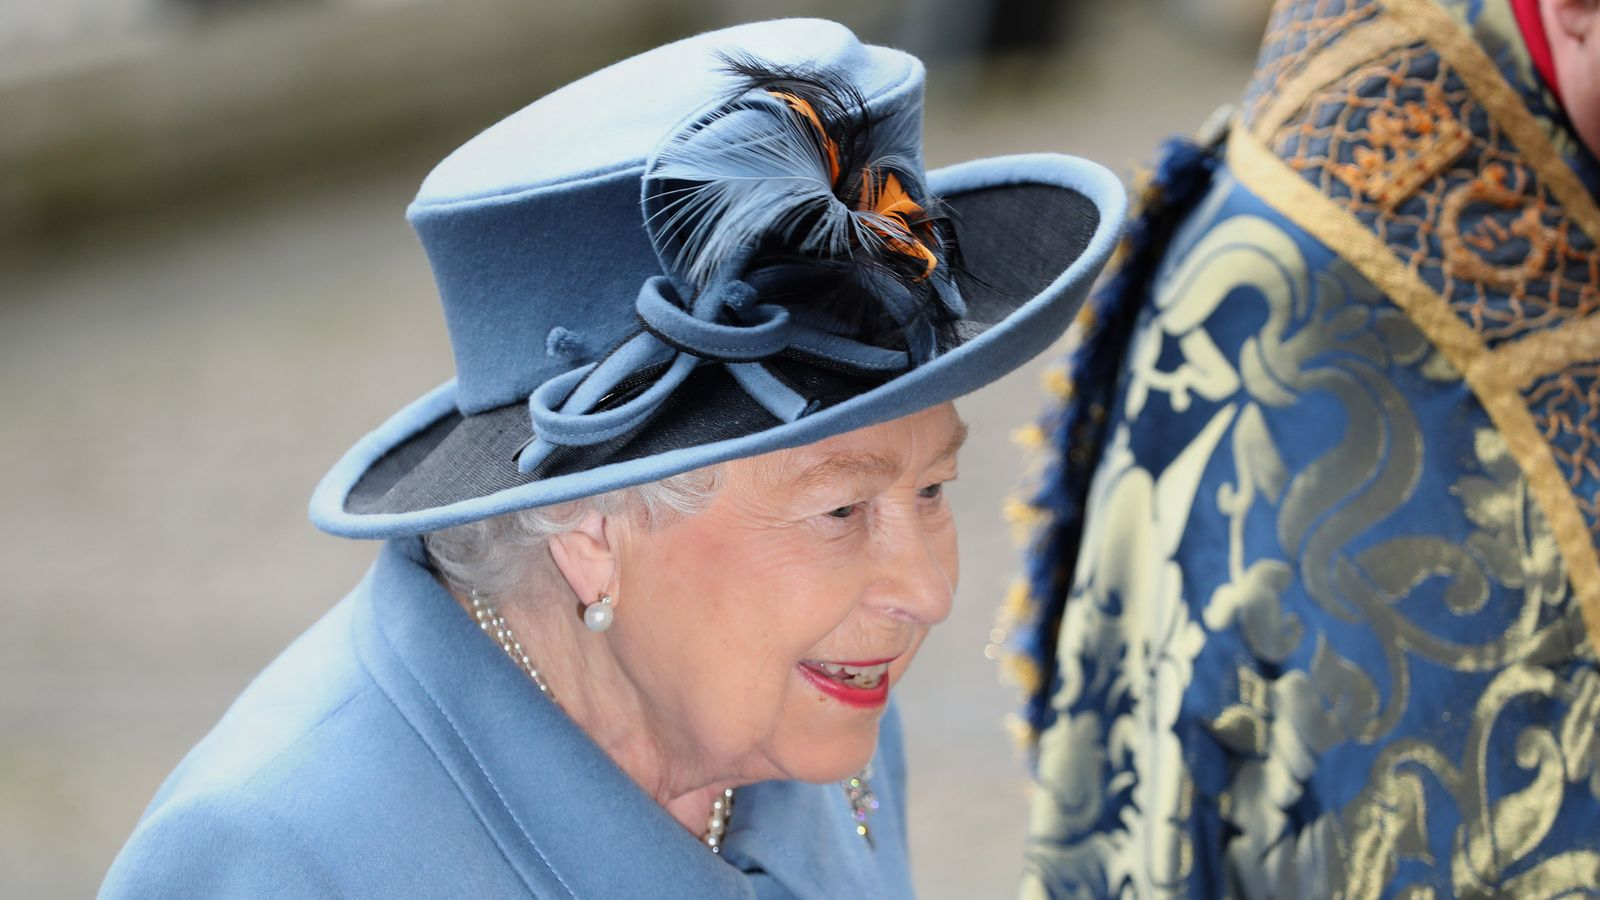 Coronavirus: Queen records special broadcast to air on Sunday - Sky News